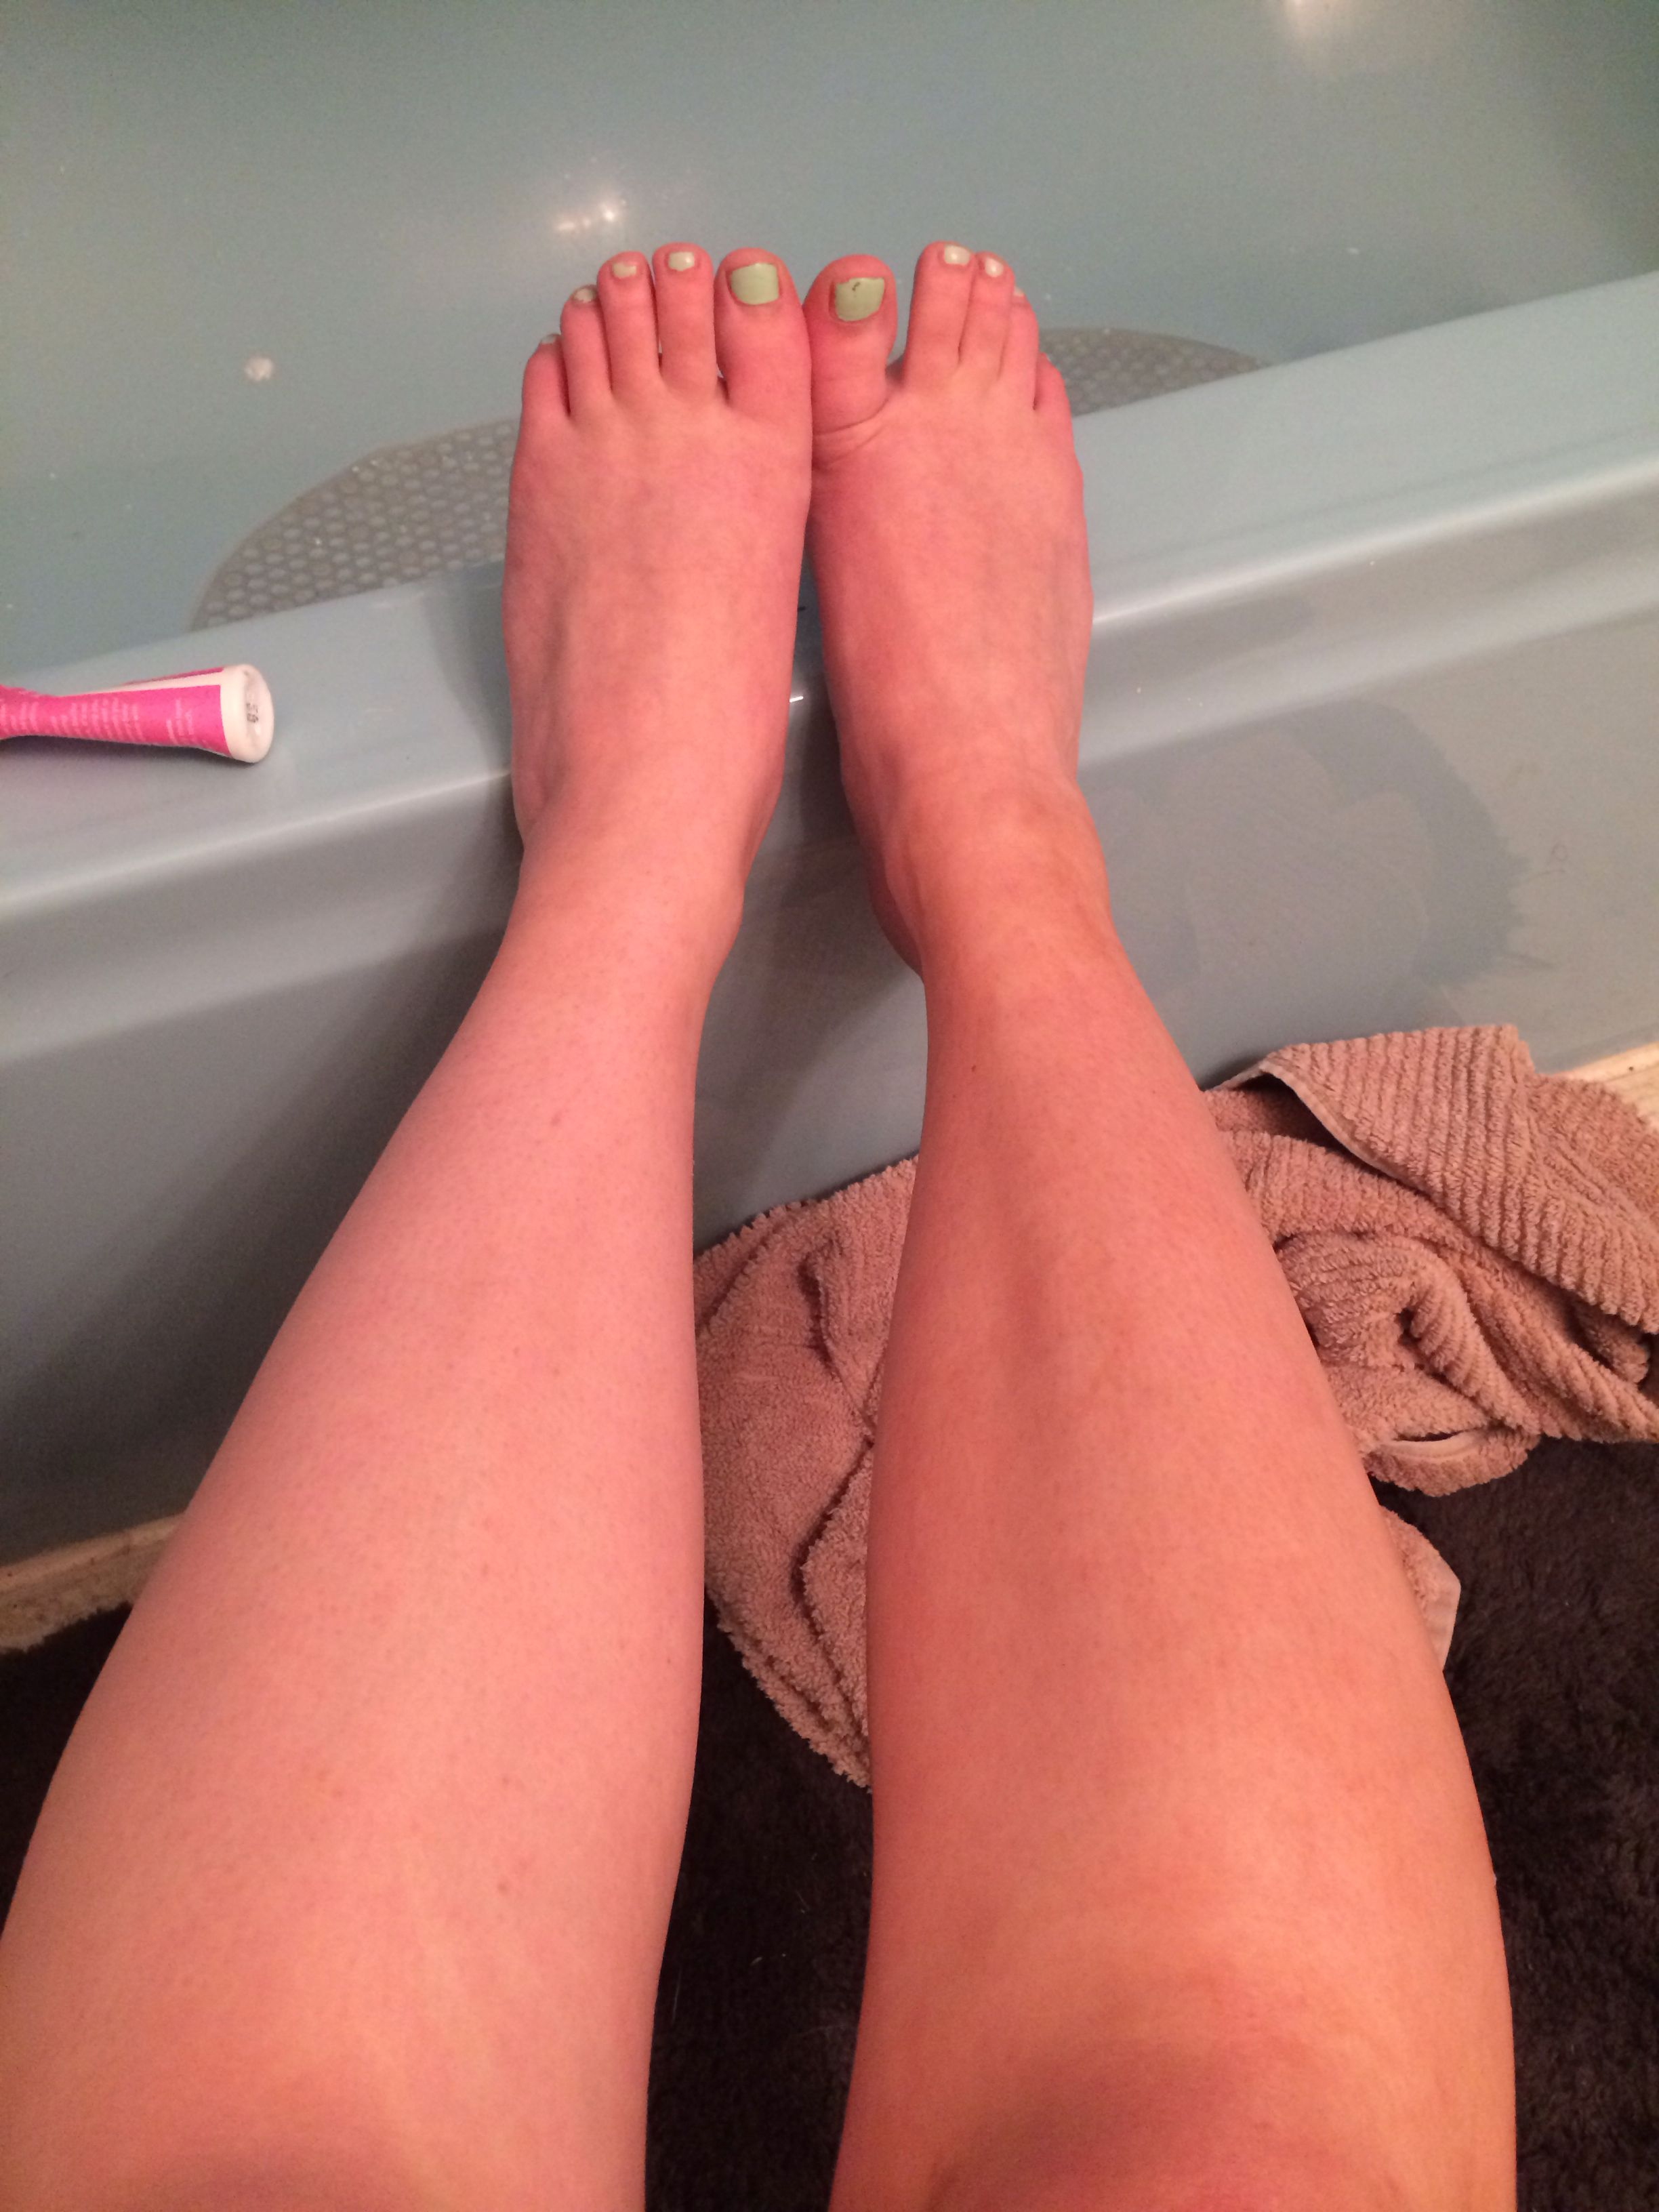 tanner trial leg and tanning pin error sunless bed